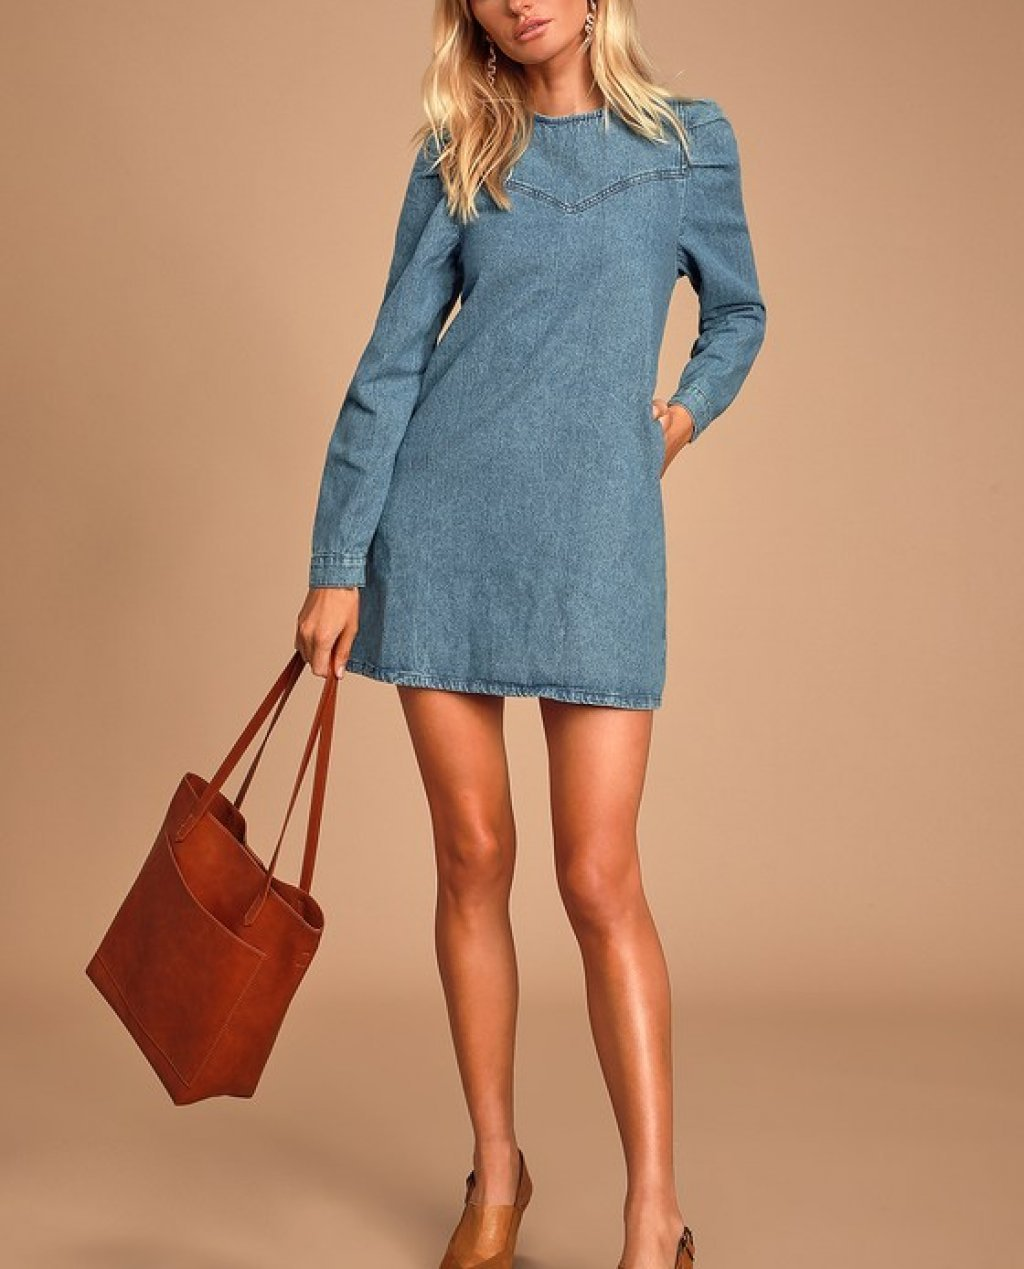 Self Control Medium Wash Denim Mini Dress